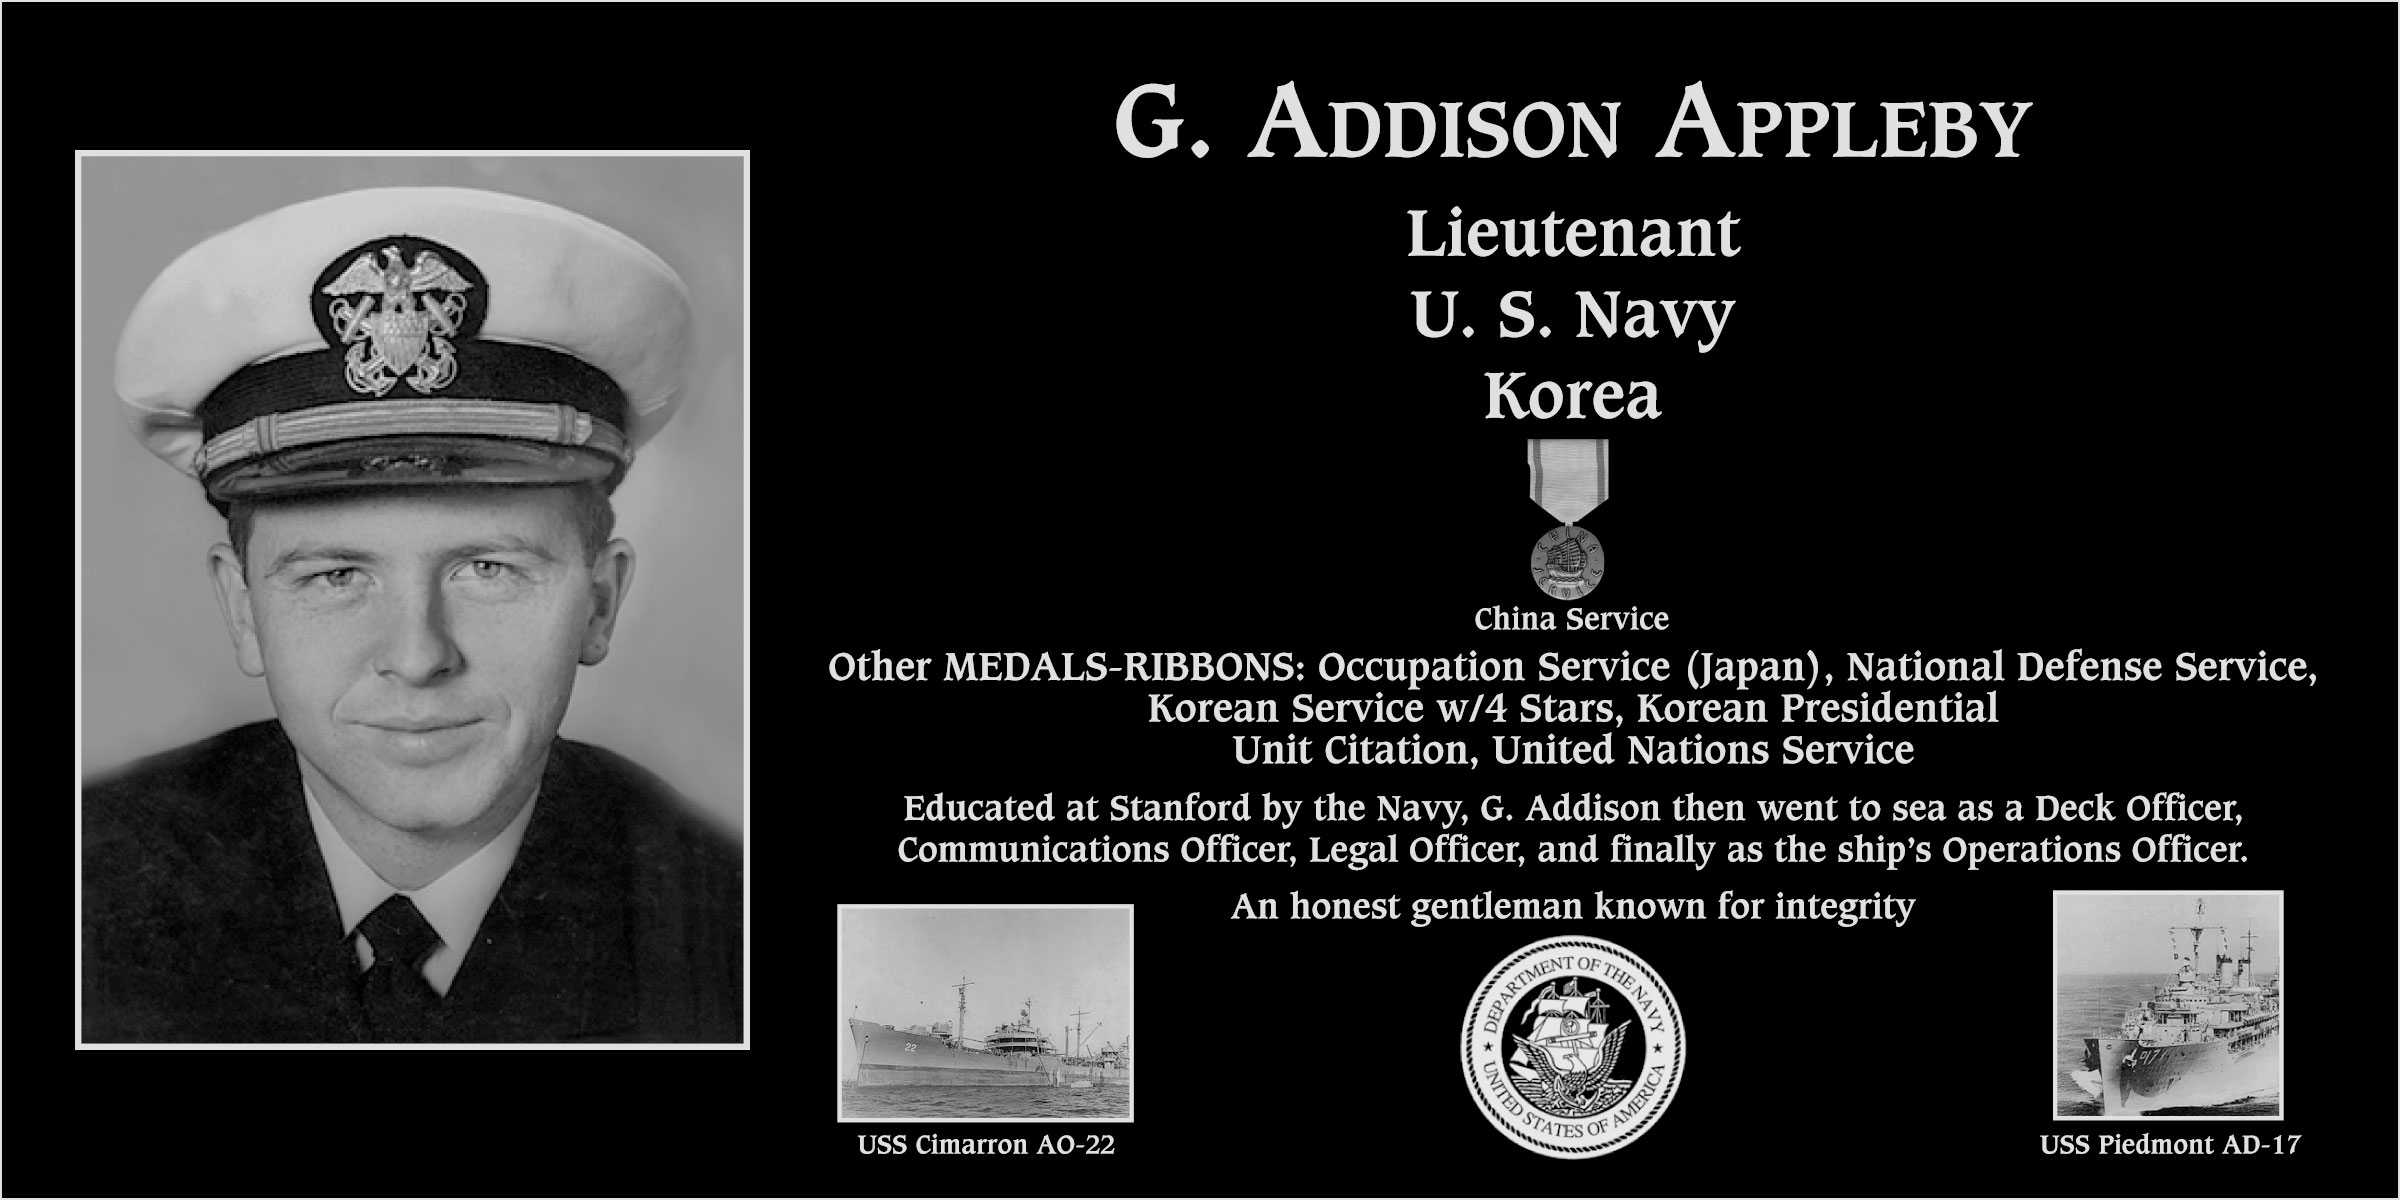 G. Addison Appleby